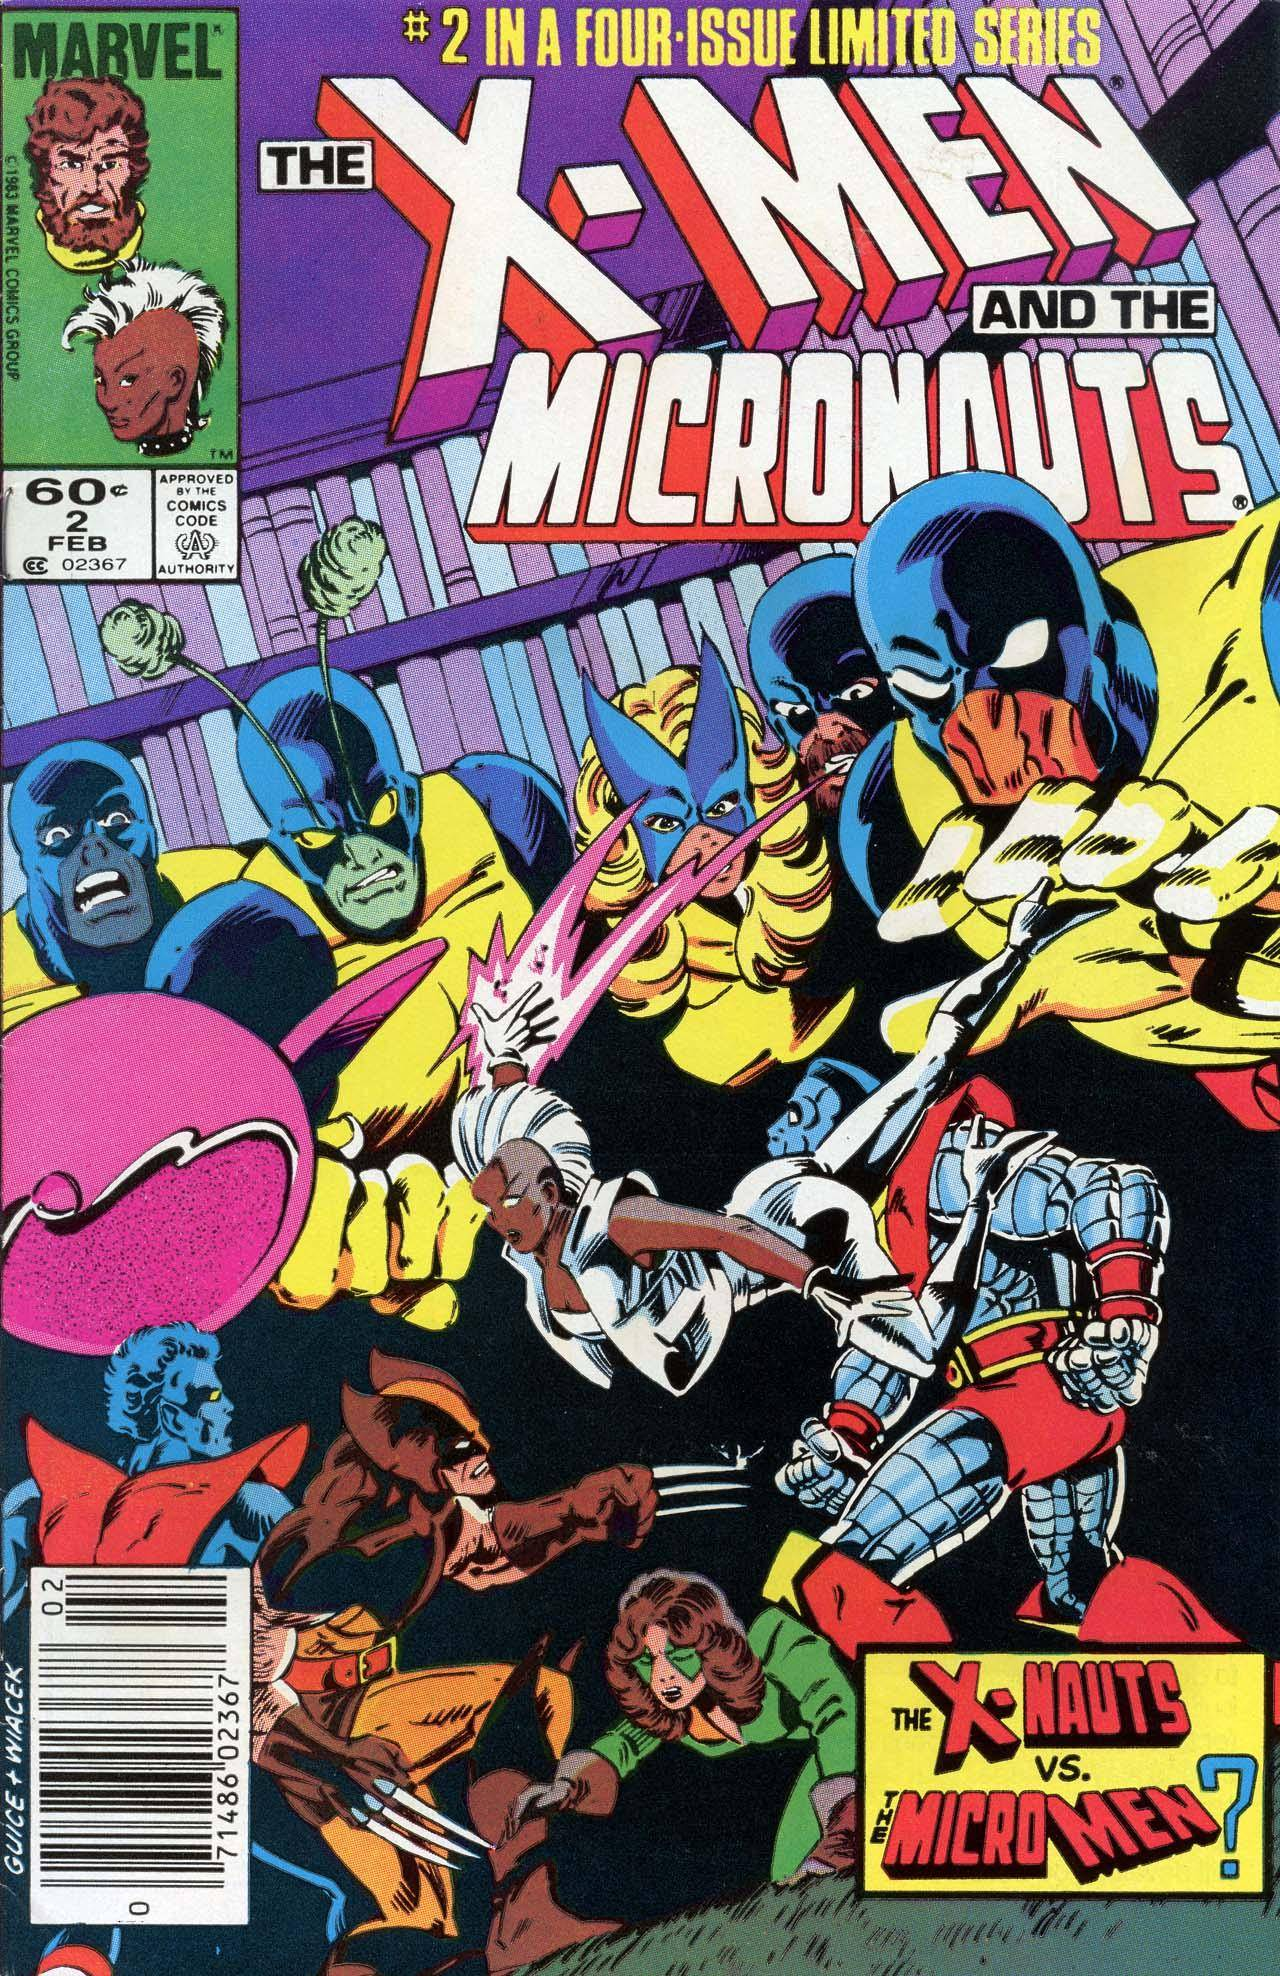 The X-Men and the Micronauts 02 of 4 [Marvel] 1984 FB-DCP c2c